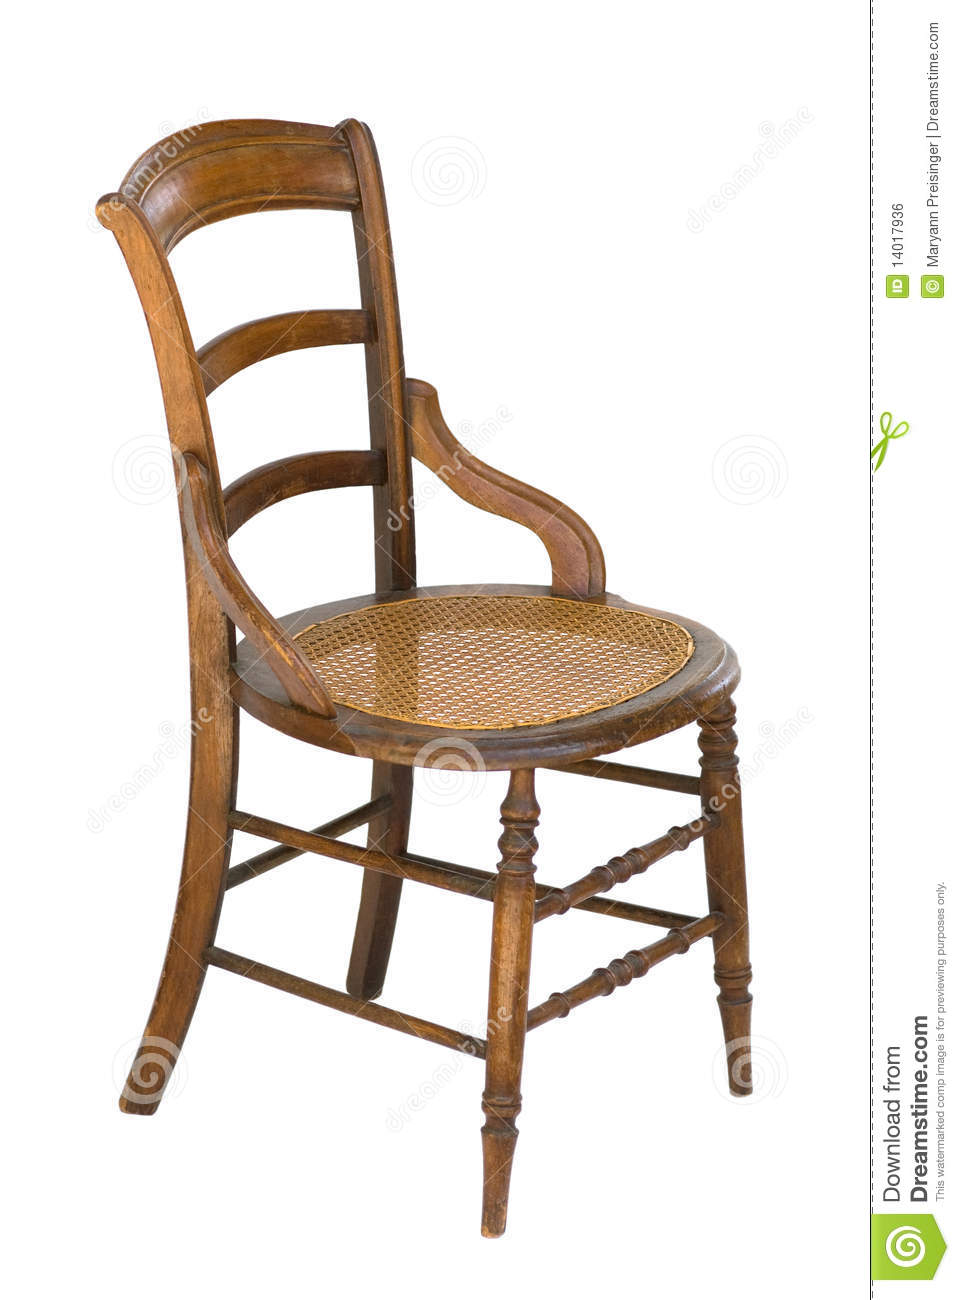 Cane Seat Antique Wood Vintage Chair - Isolated Royalty ...